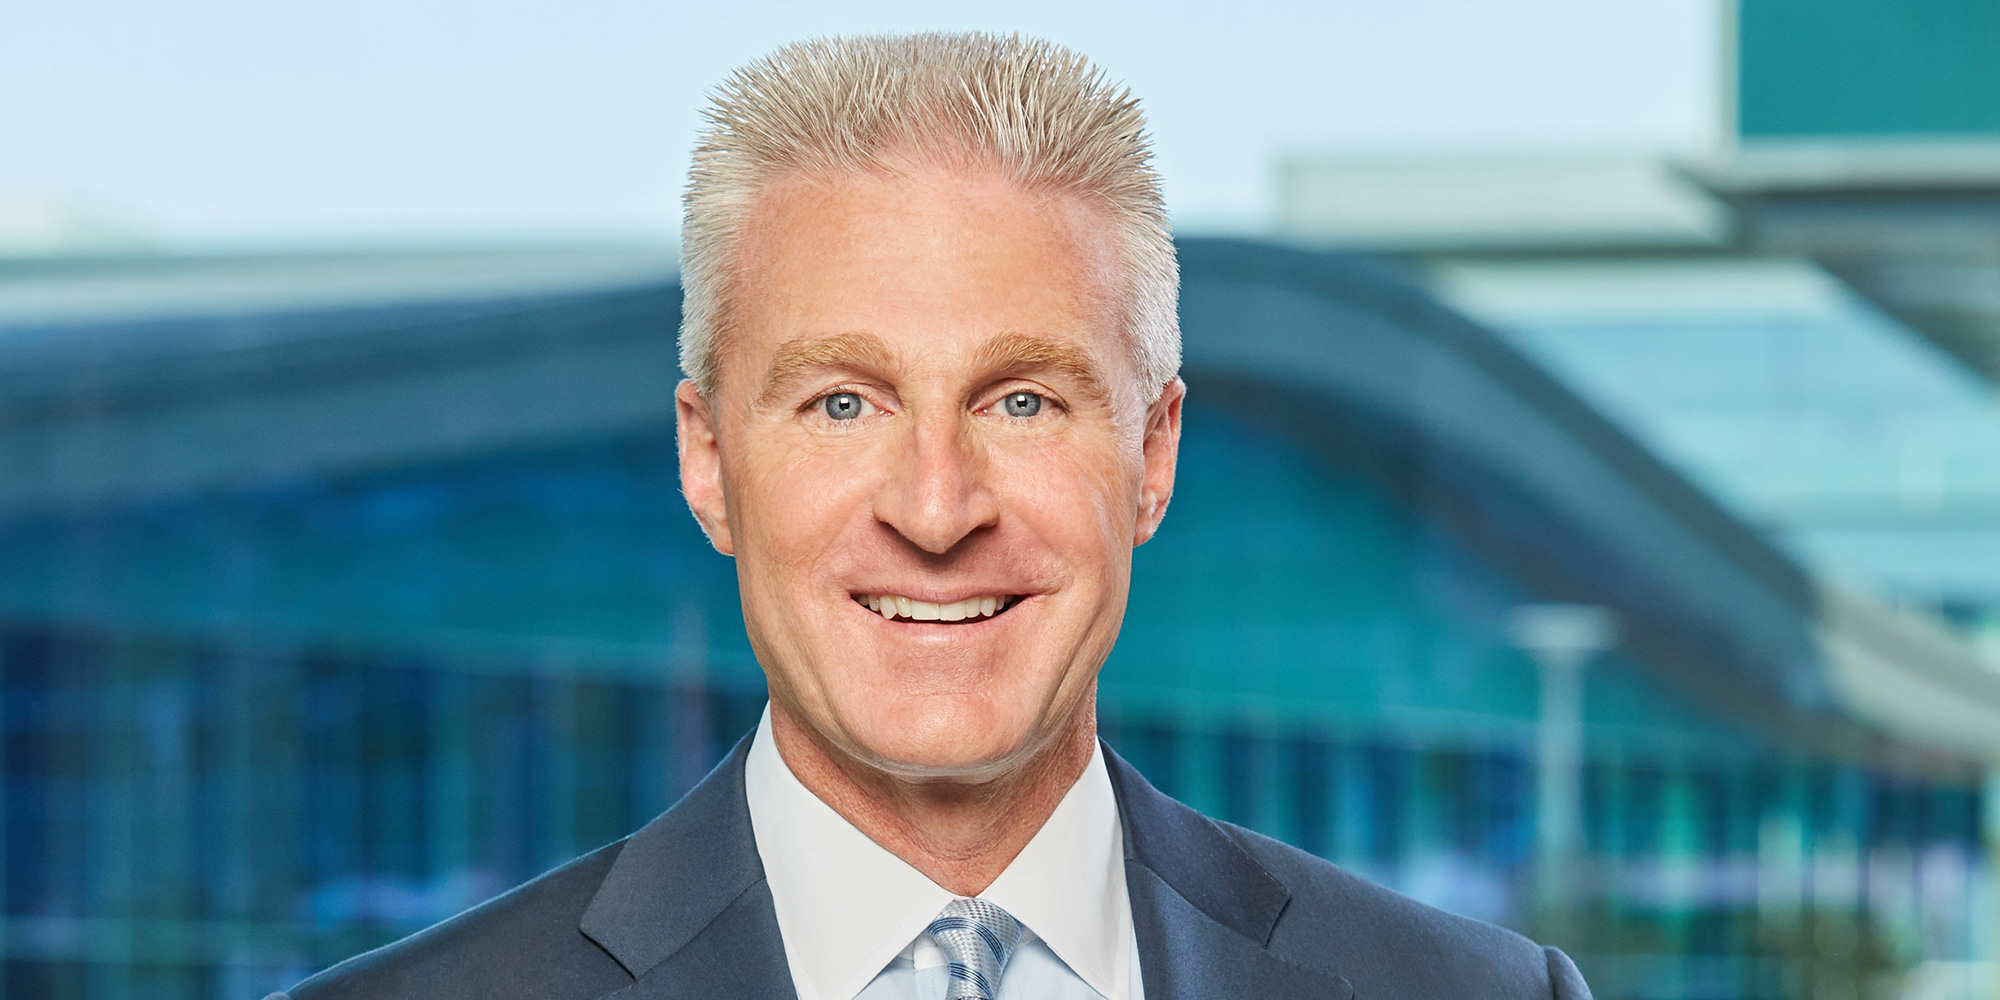 Jack Hollis leads all sales, marketing, and market representation for Toyota North America.